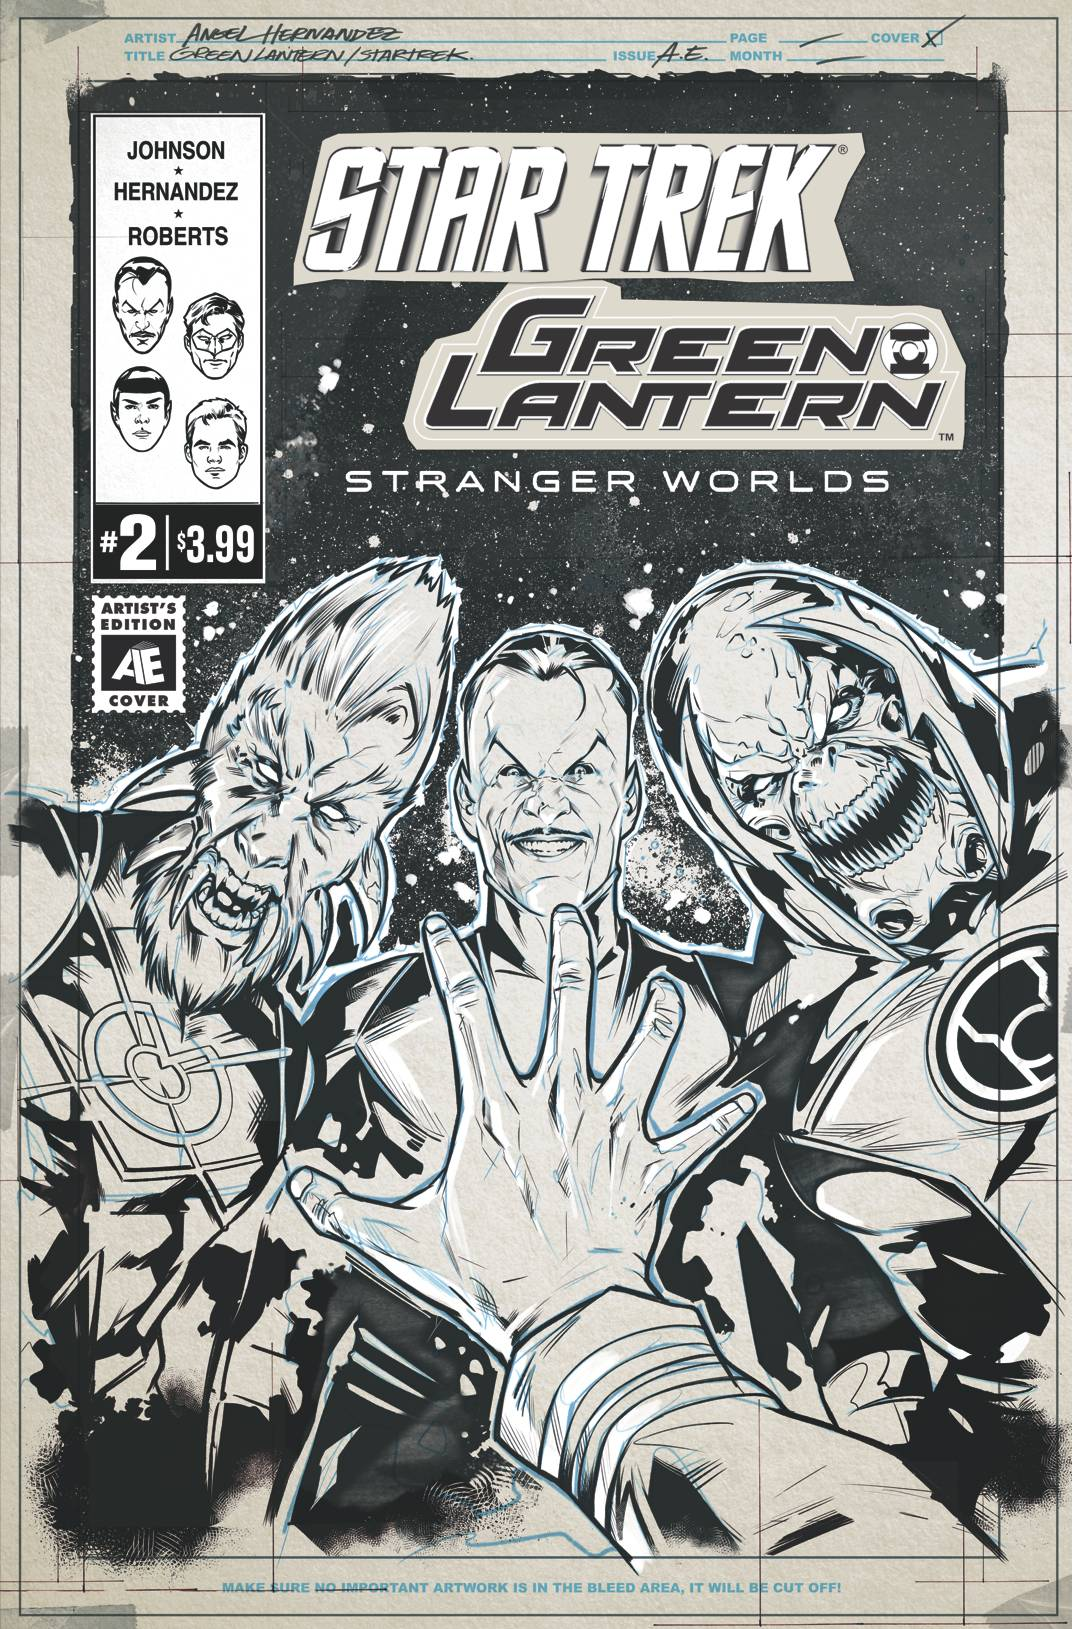 STAR TREK GREEN LANTERN VOL 2 #2 ARTIST ED VAR